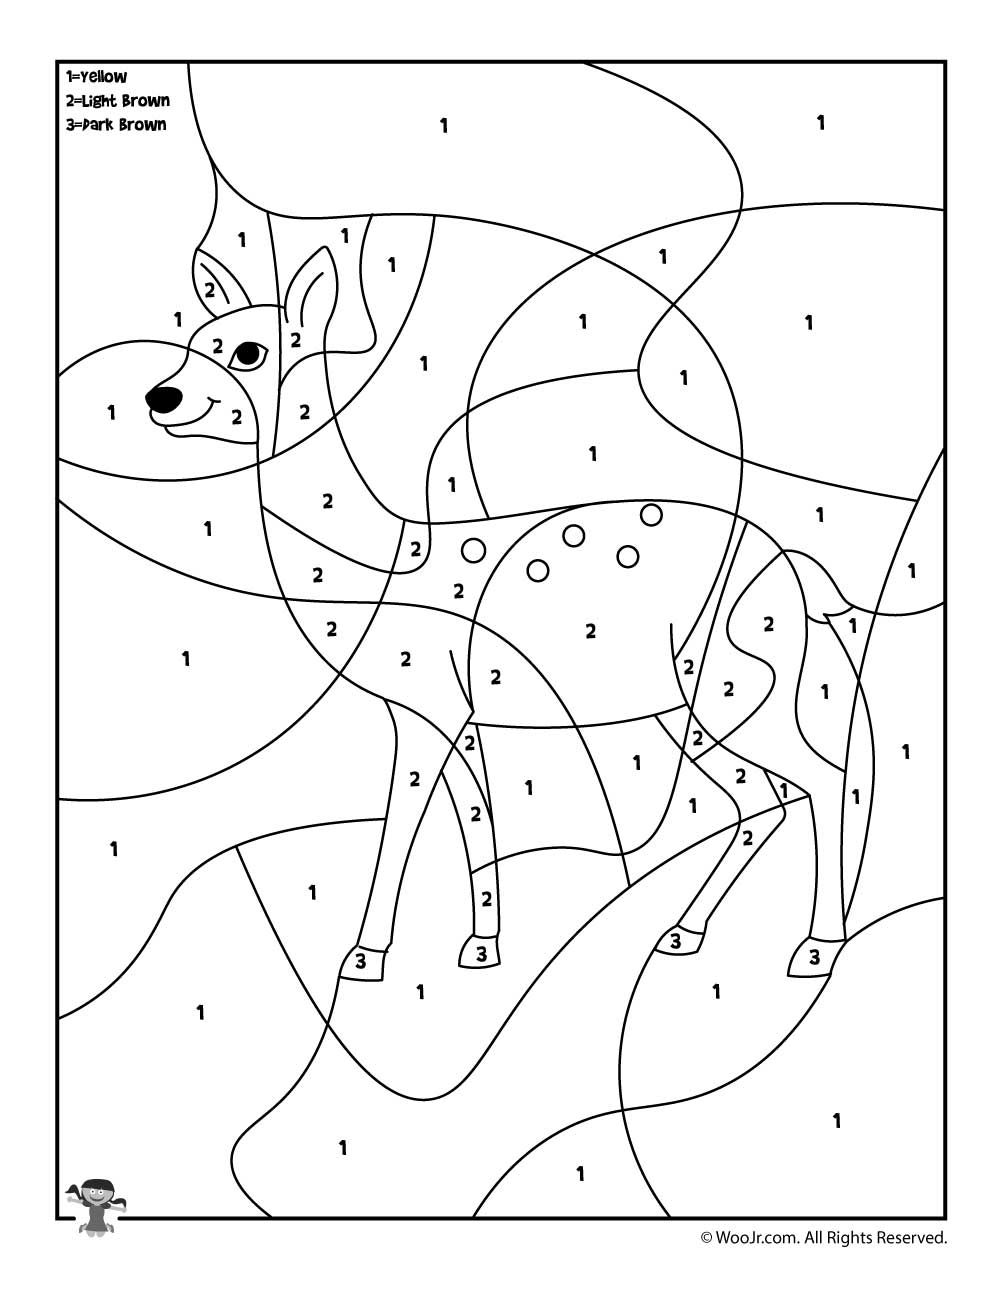 animal number coloring pages zoo animals color by number page colorear por números animal pages coloring number